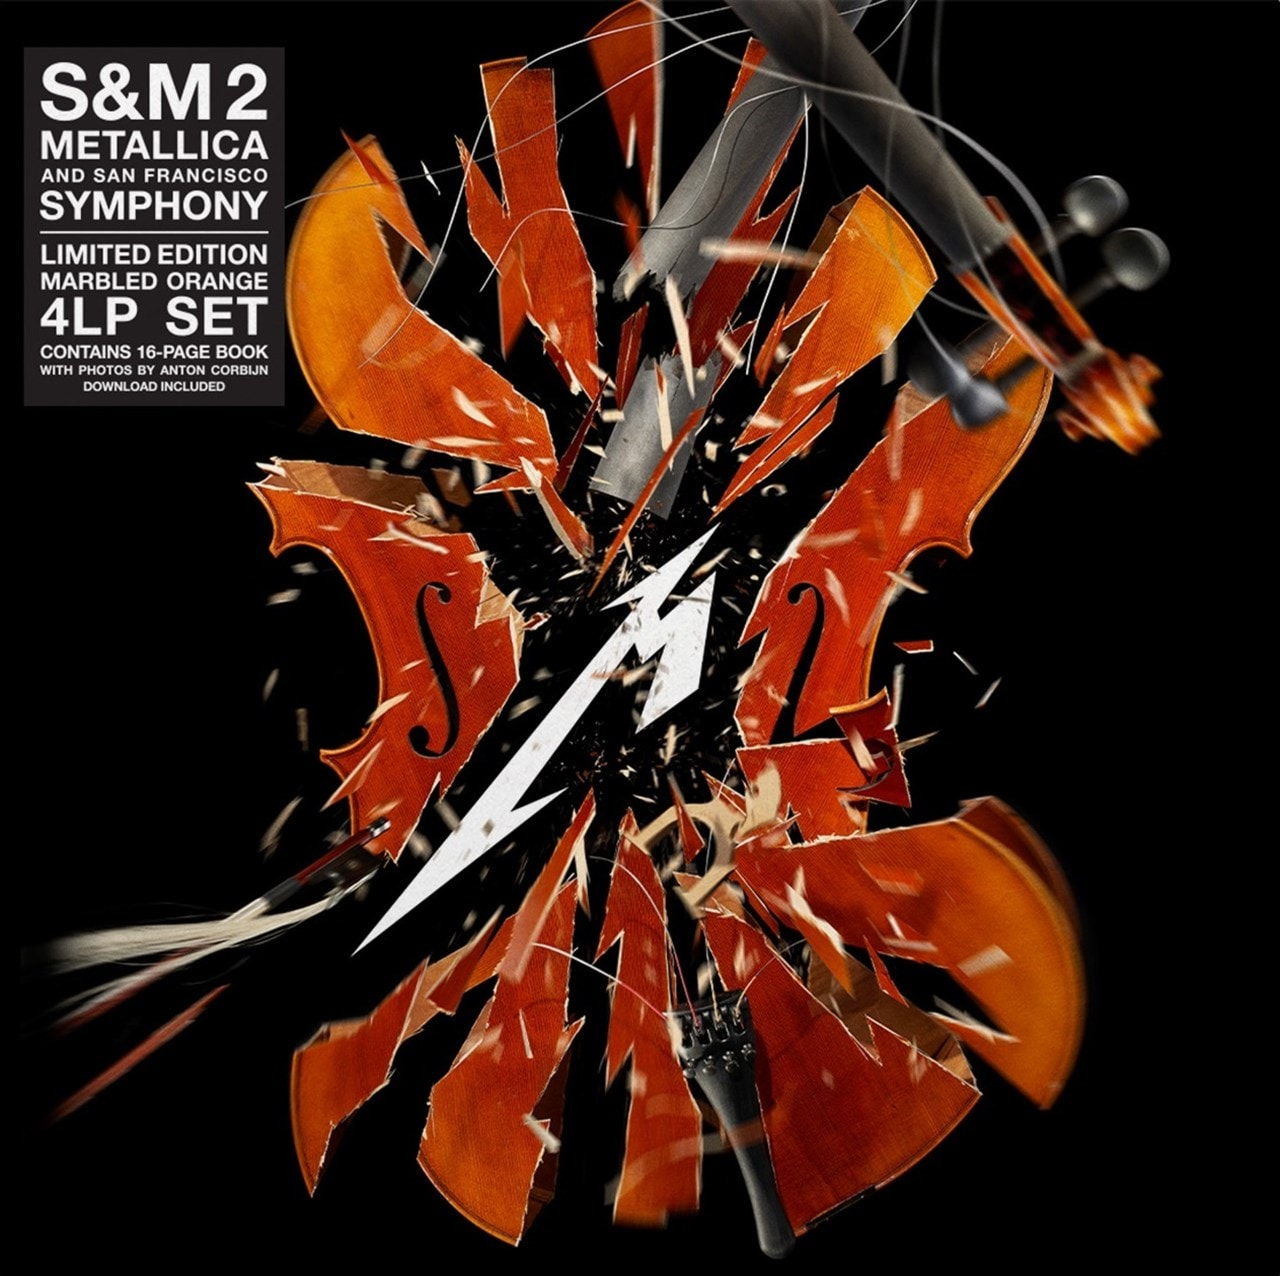 S&M2 - Limited Edition Orange Vinyl - 2